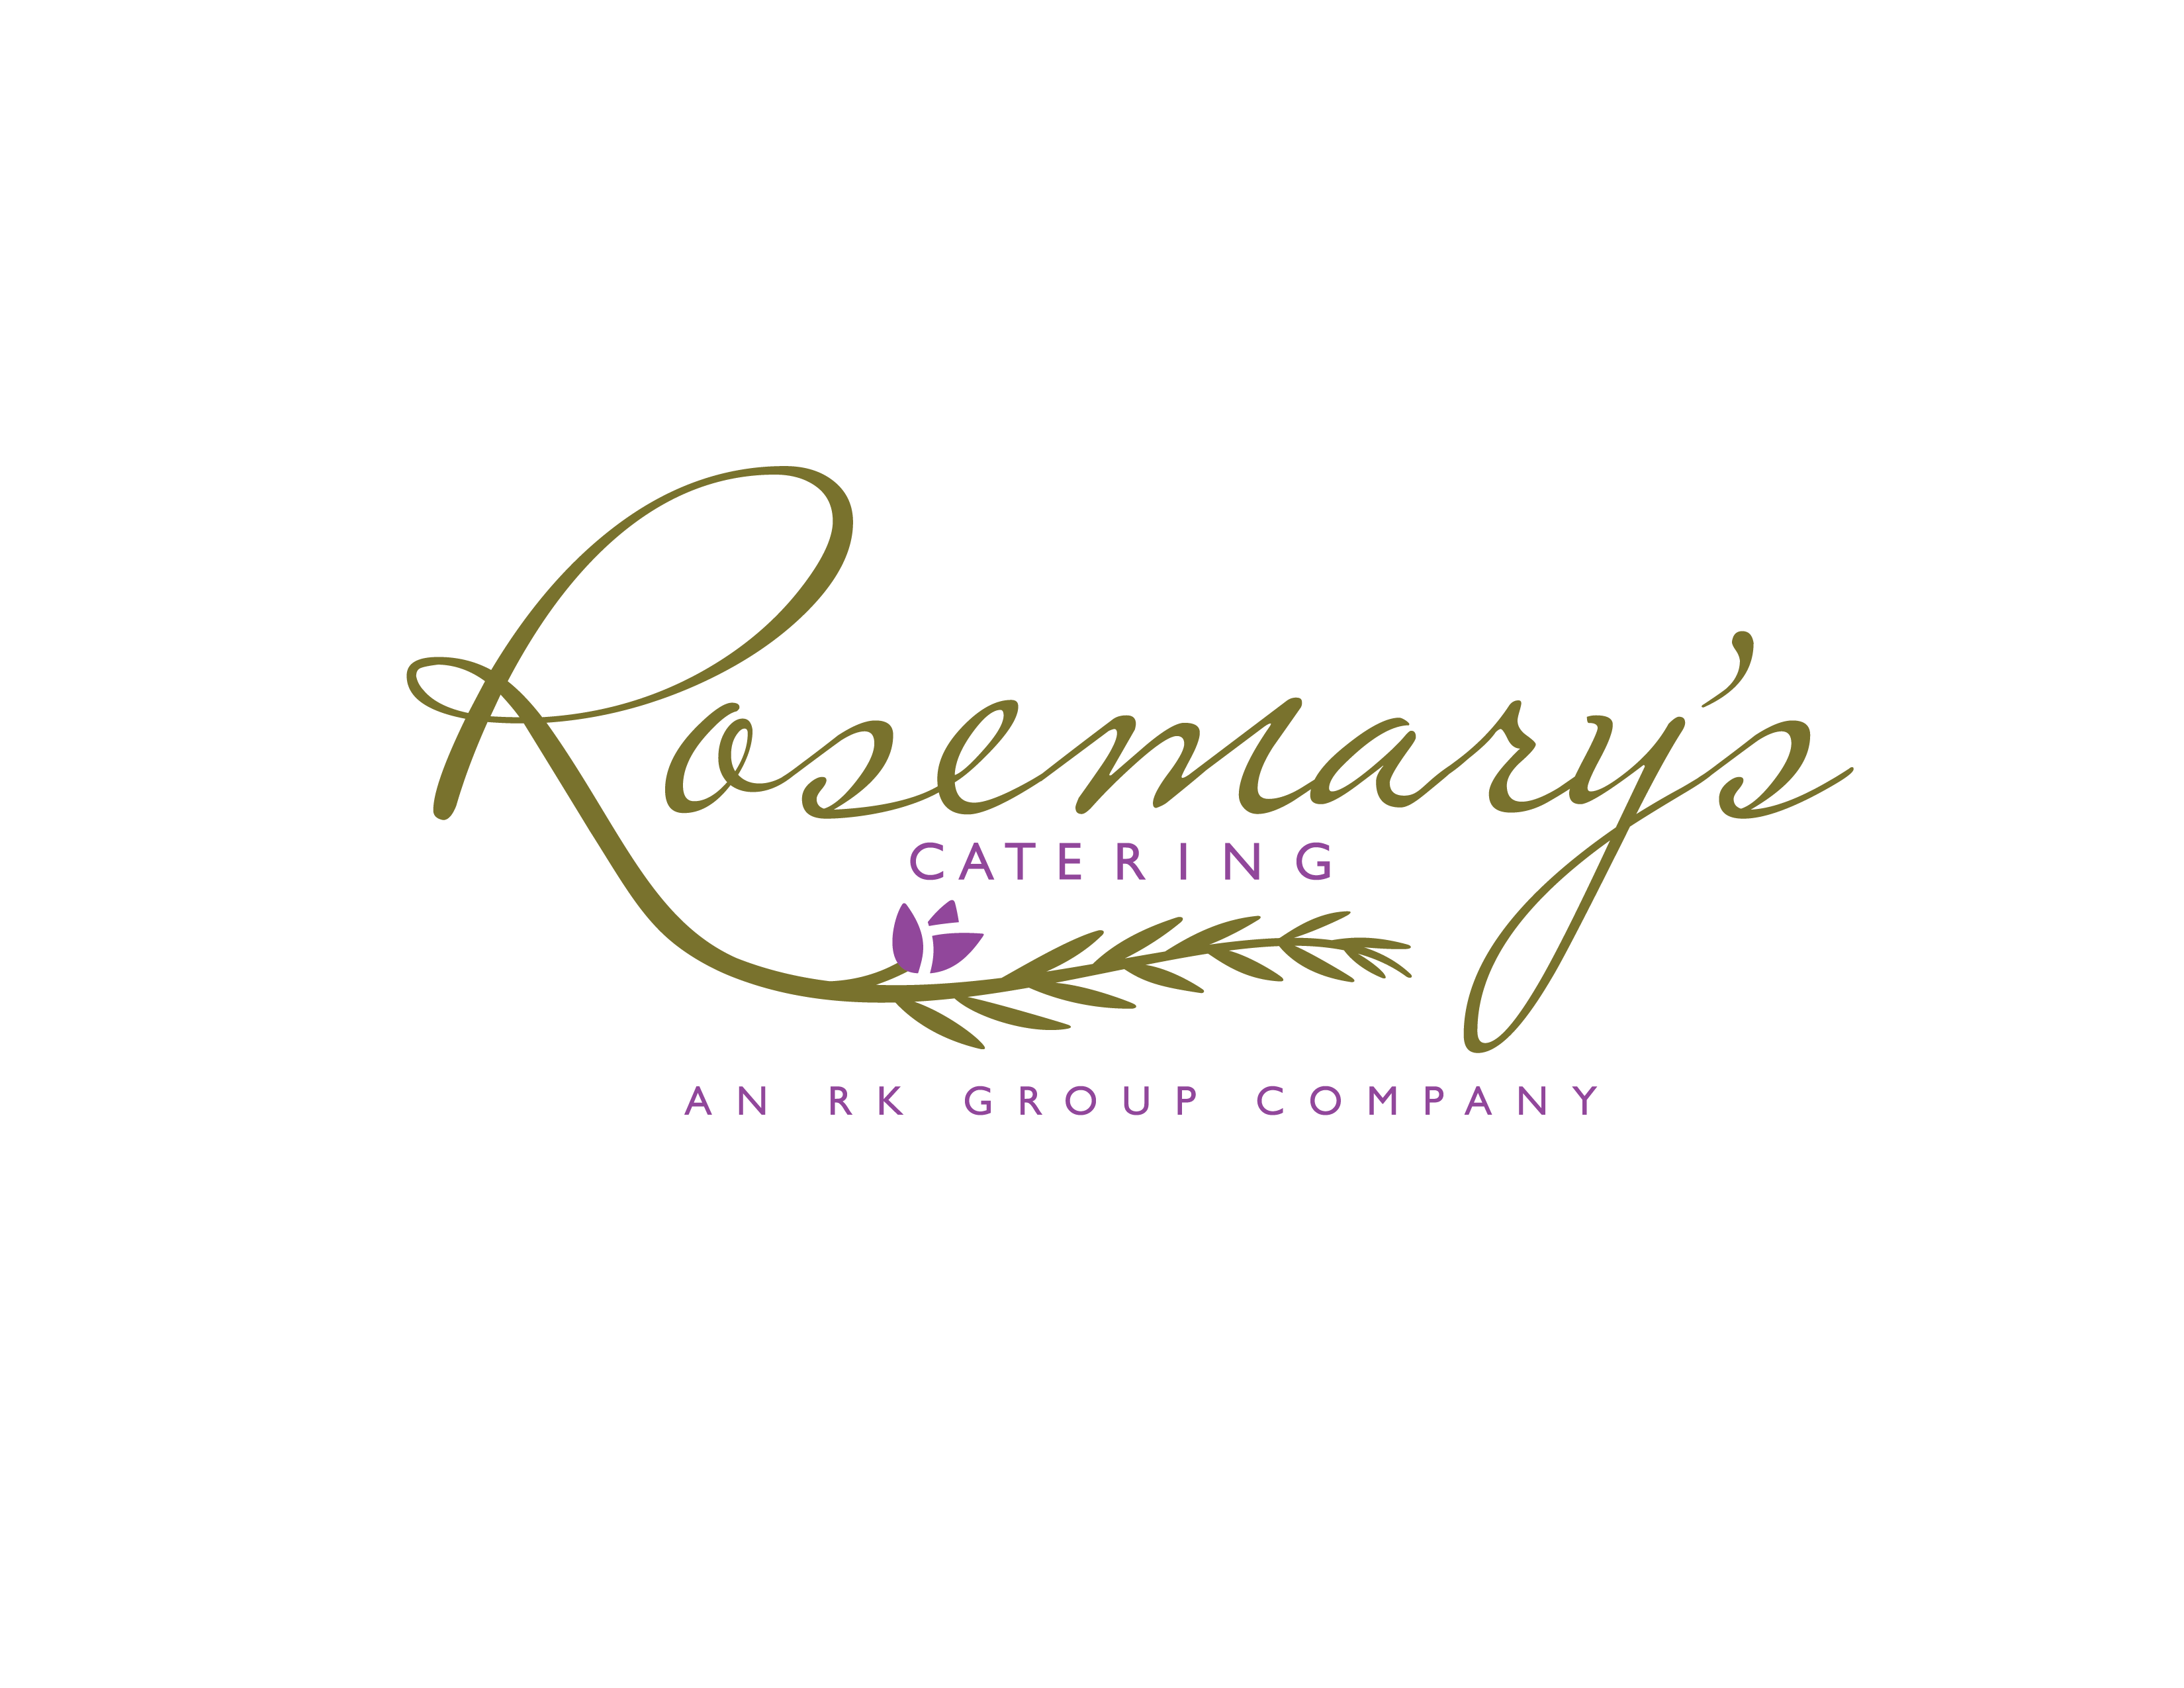 Rosemary's Catering Catering